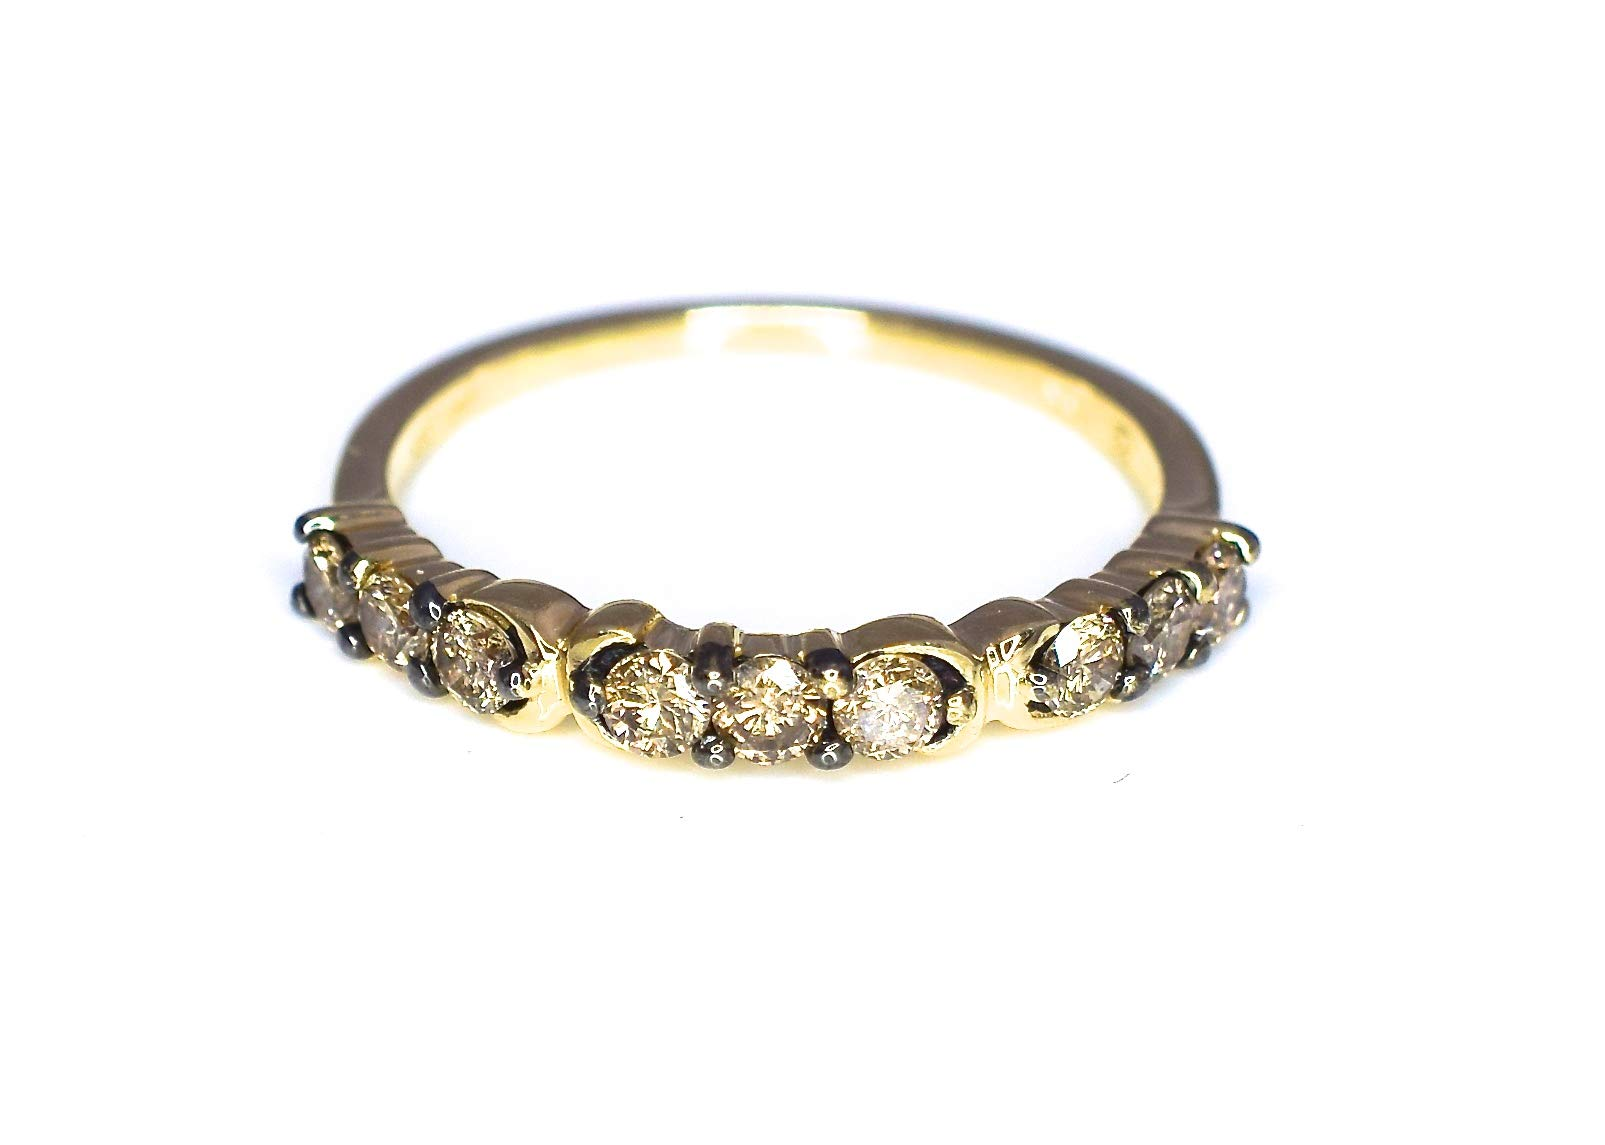 LeVian Ring 1/2 ct Chocolate Diamonds Band 14K Yellow Gold Size 7 by LE VIAN (Image #3)